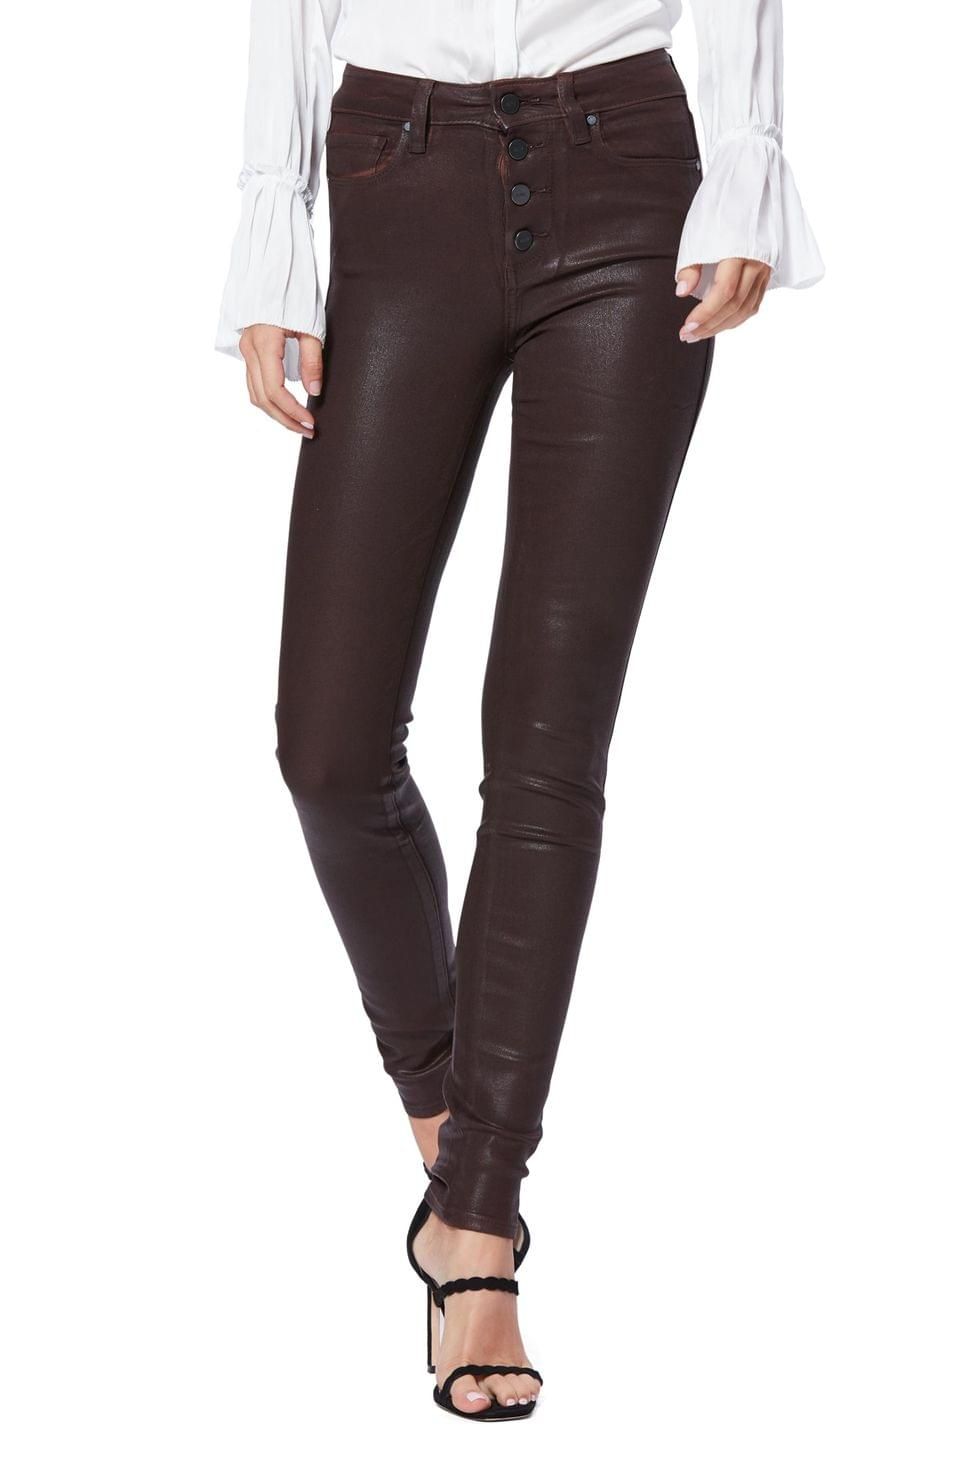 Women's PAIGE Transcend - Hoxton Coated High Waist Ultra Skinny Jeans (Chicory Coffee Luxe Coating)